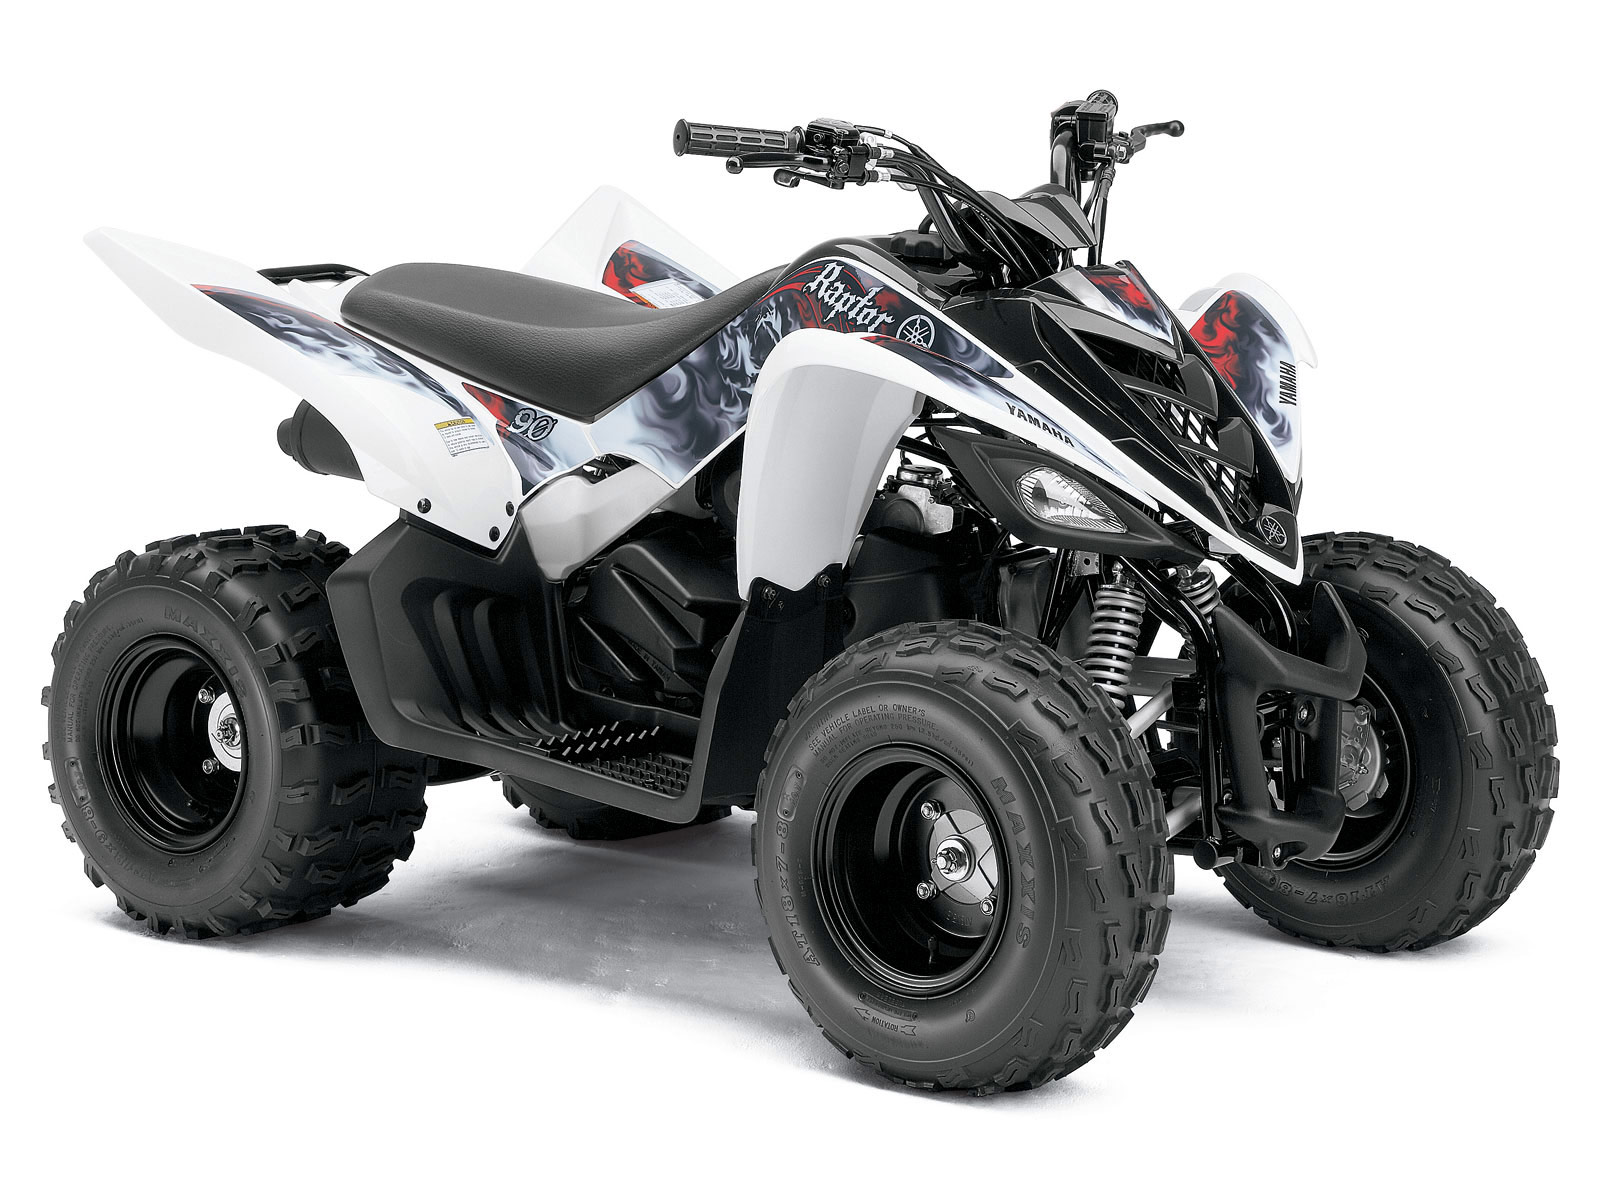 2011 yamaha raptor 90 atv pictures specifications super moto and sexy girls. Black Bedroom Furniture Sets. Home Design Ideas